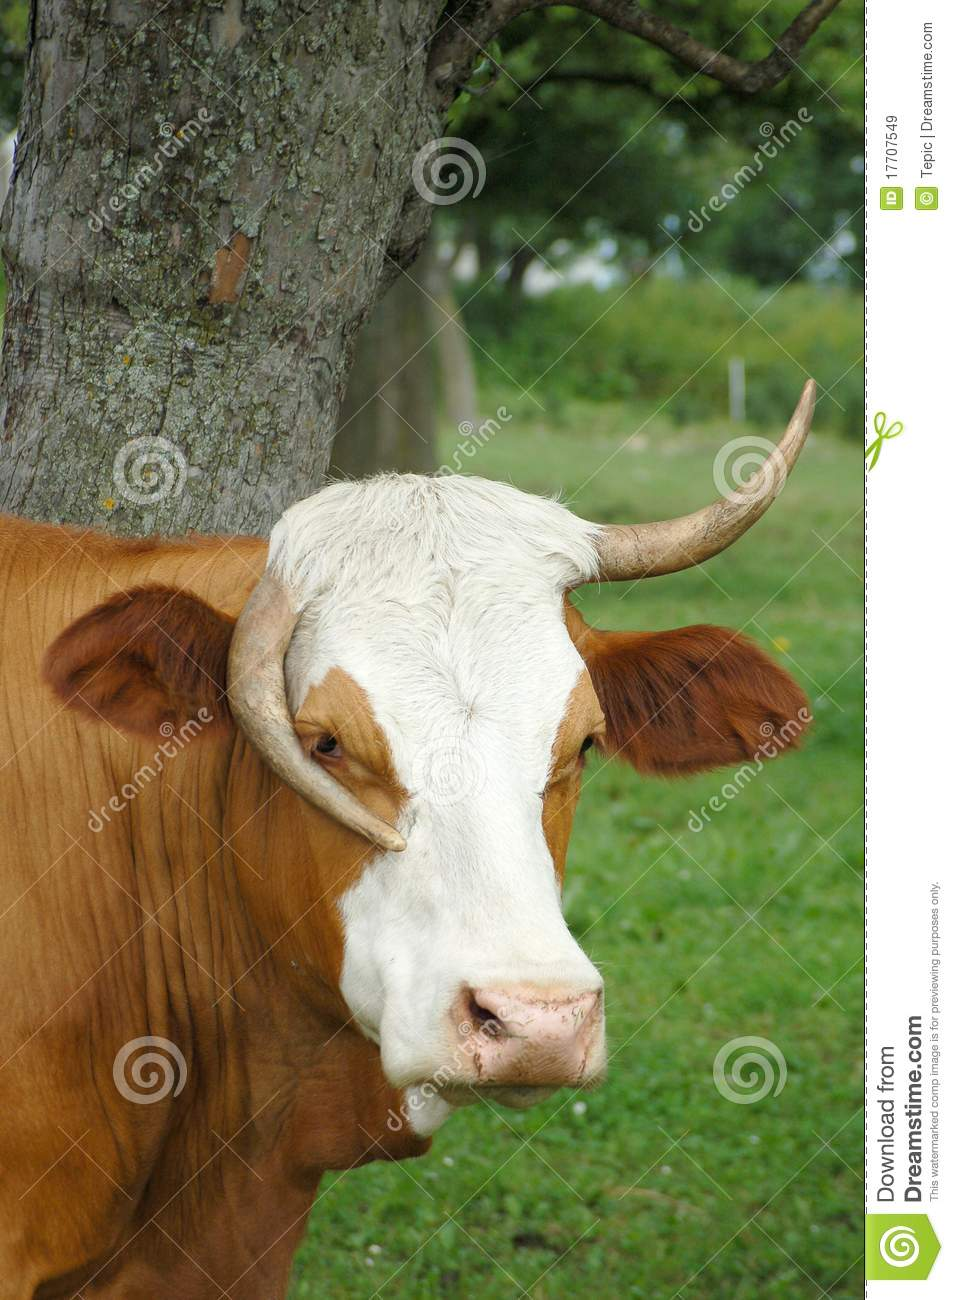 Vache dr le images libres de droits image 17707549 - Photo de vache drole ...